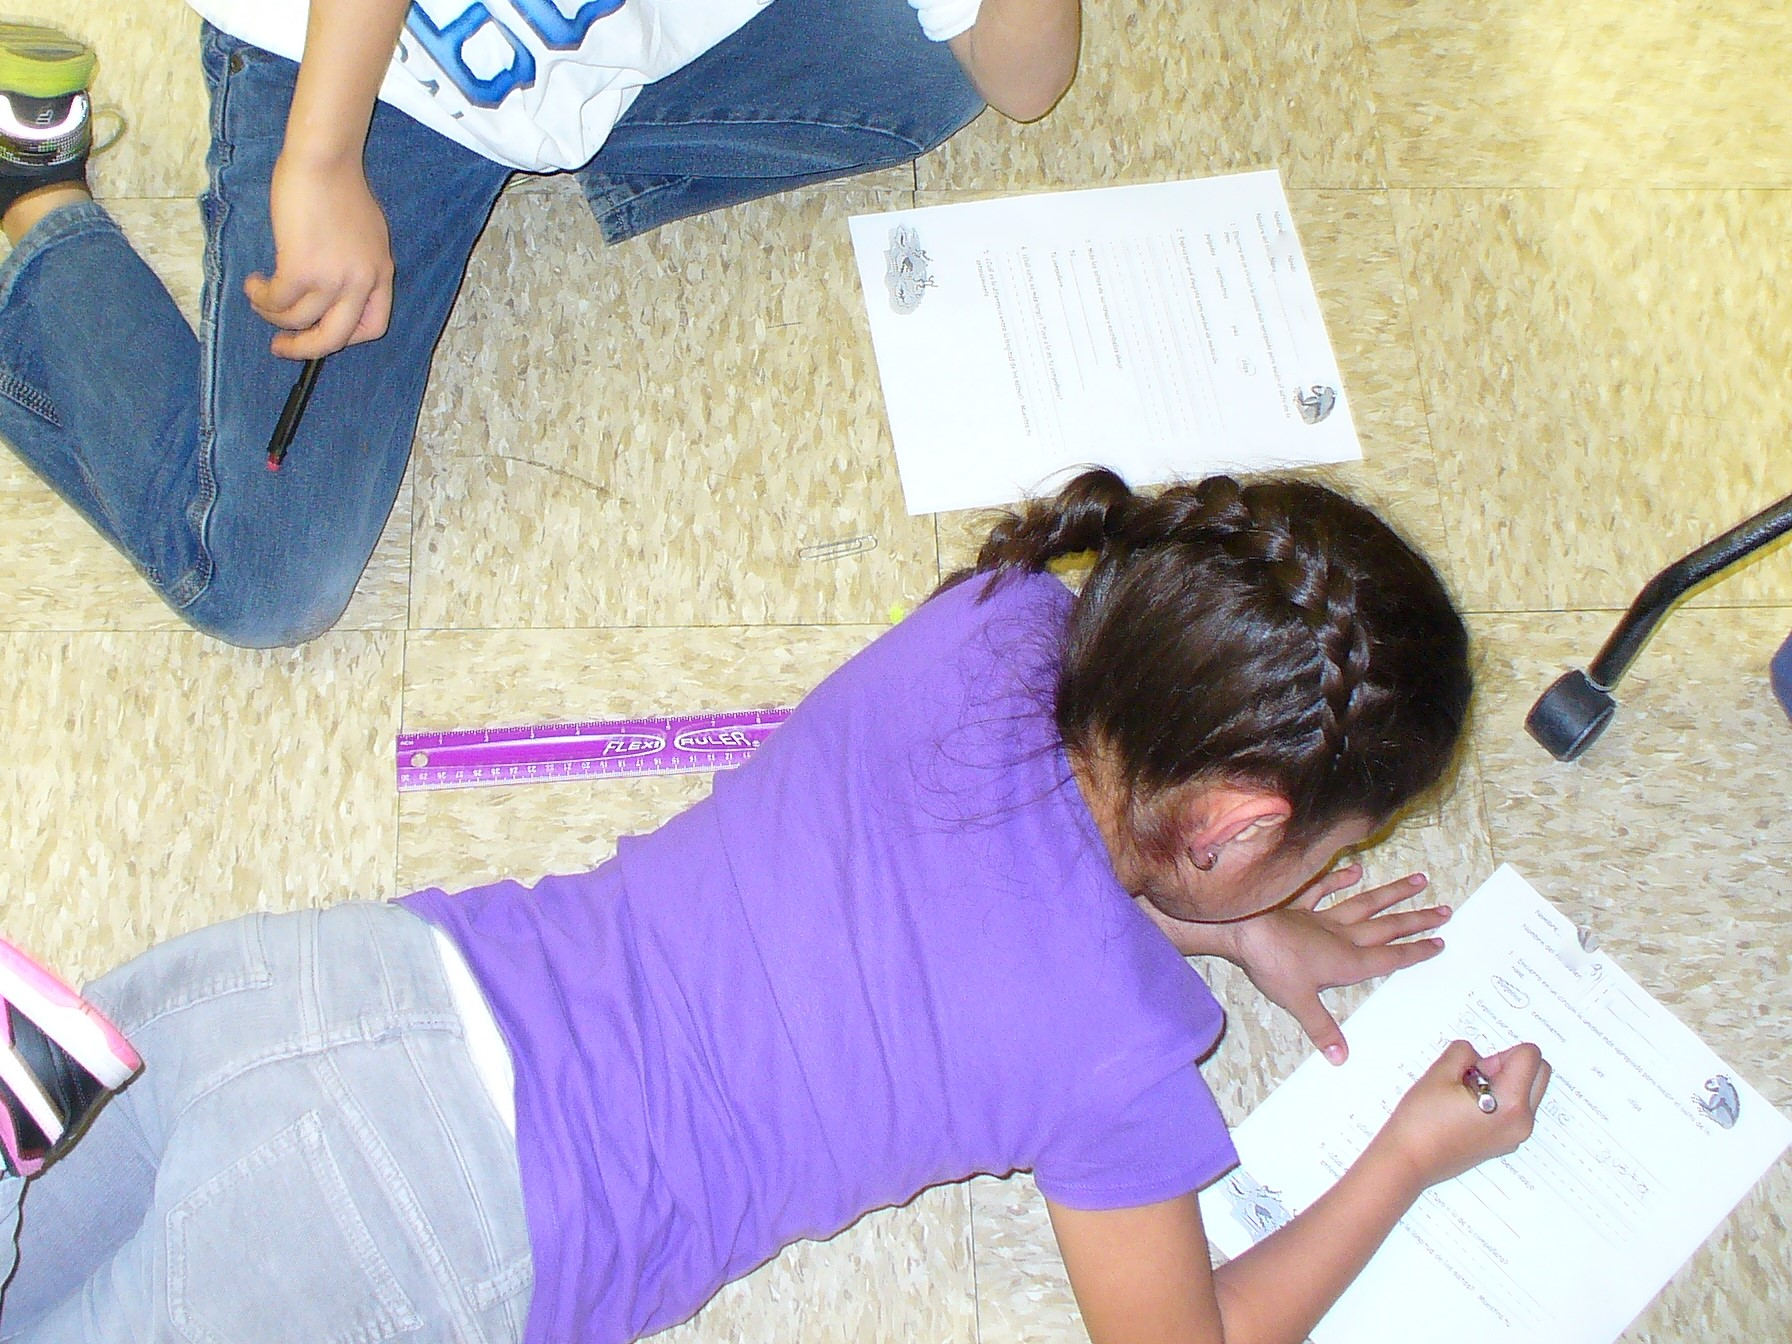 A student recording their measurements.